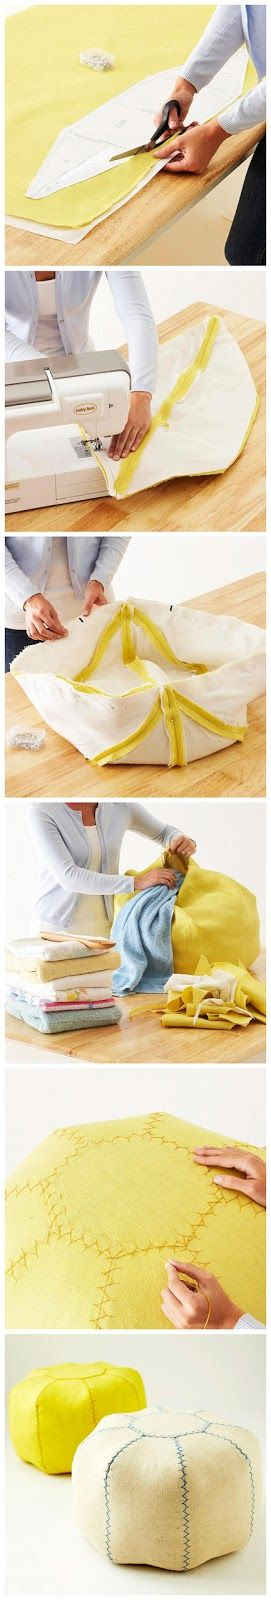 Make a Pretty Pouf     #crafty #DIY #crafts